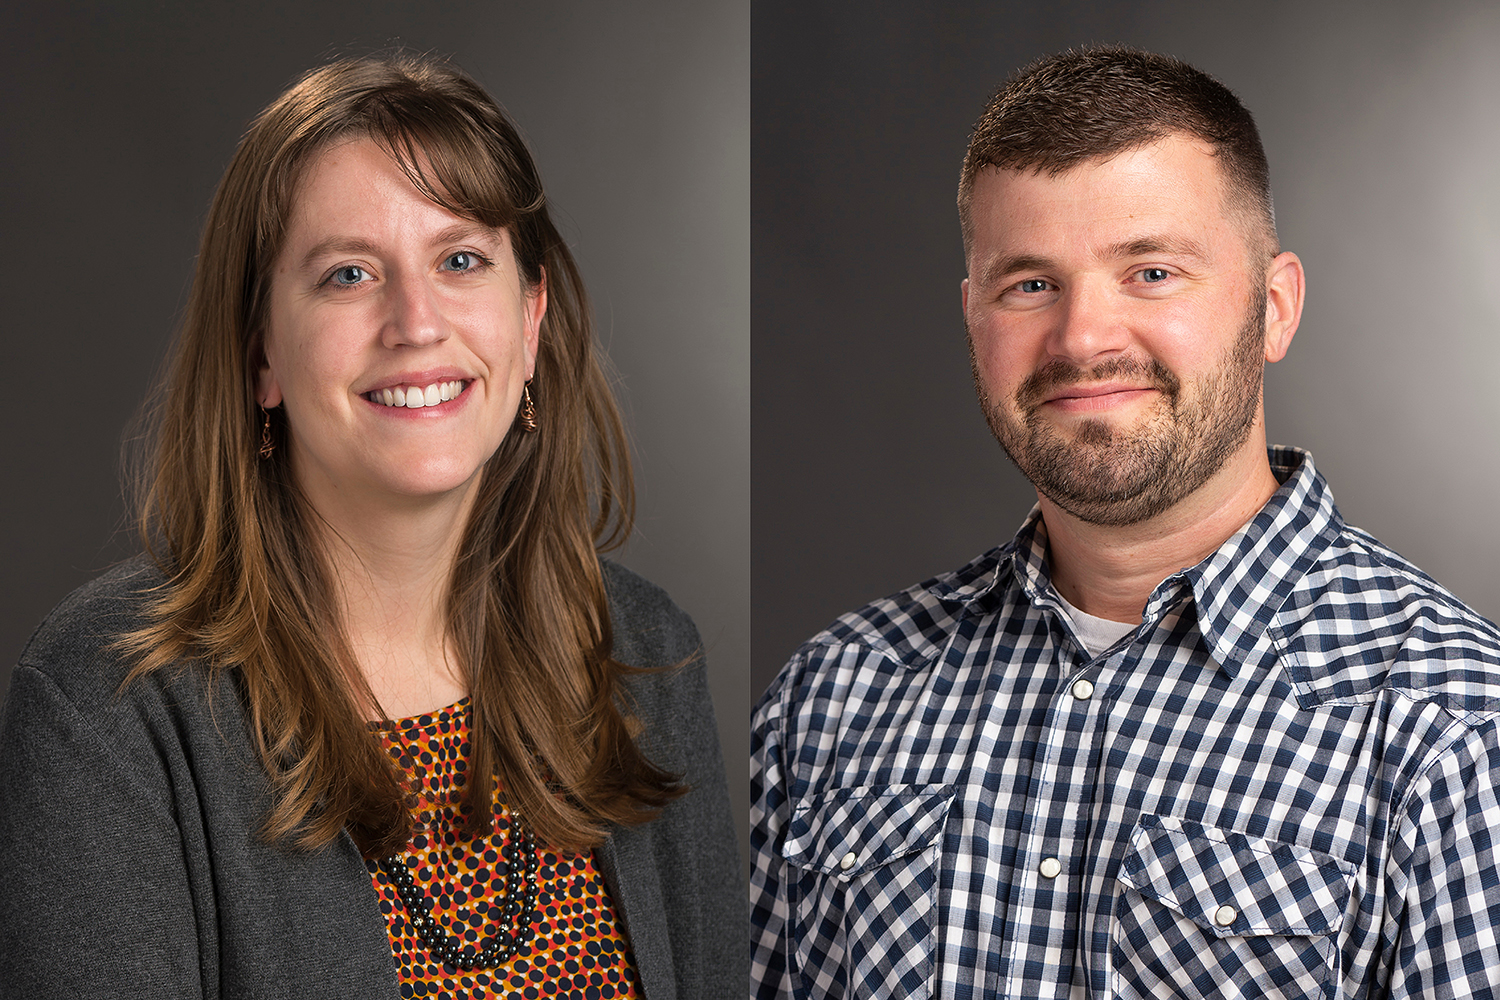 Side-by-side headshots of Kelly McCauley Krish and Christopher Cameron.